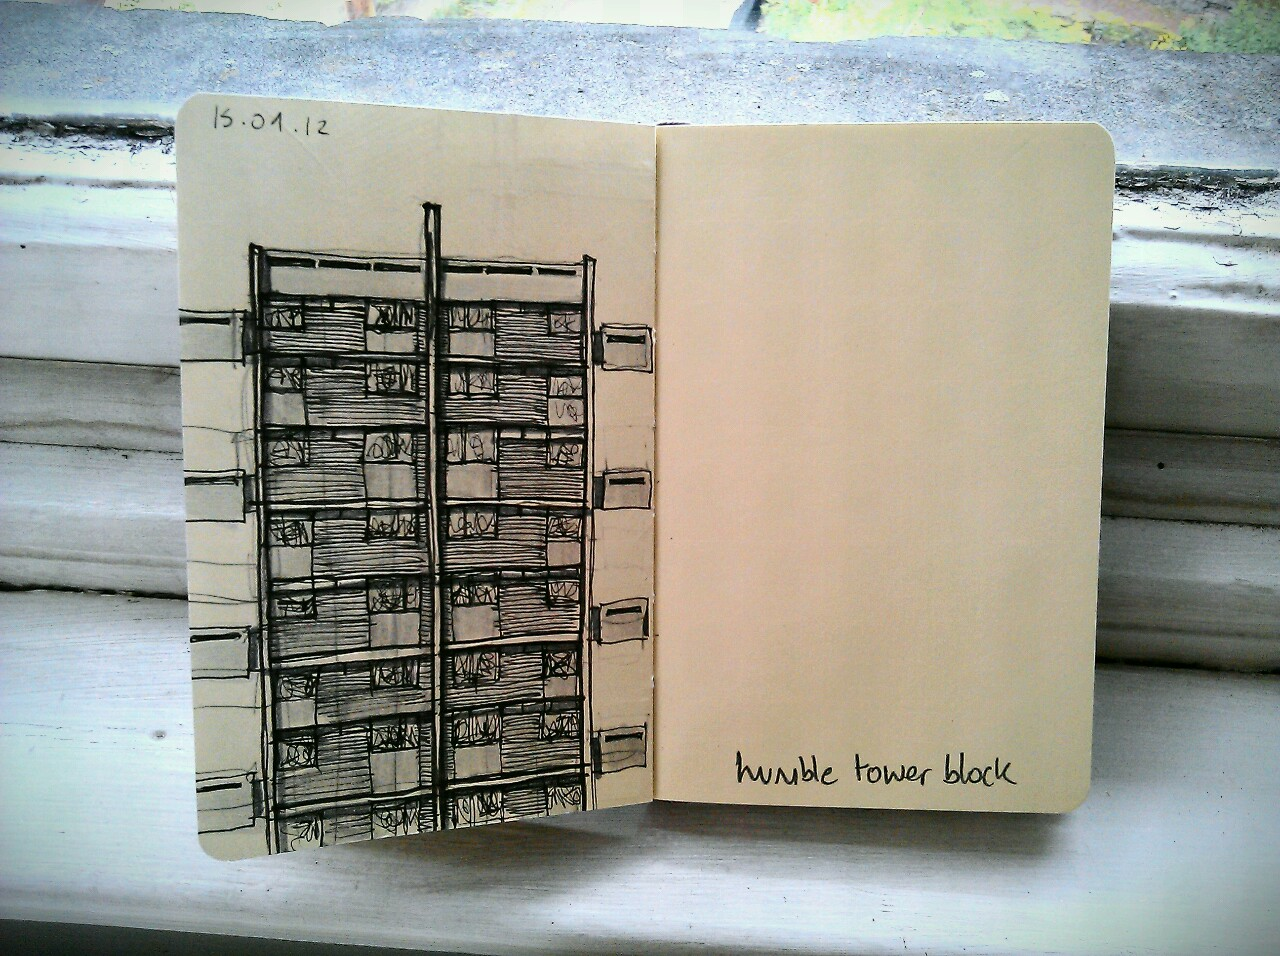 365 drawings later … day 228 … humble tower block